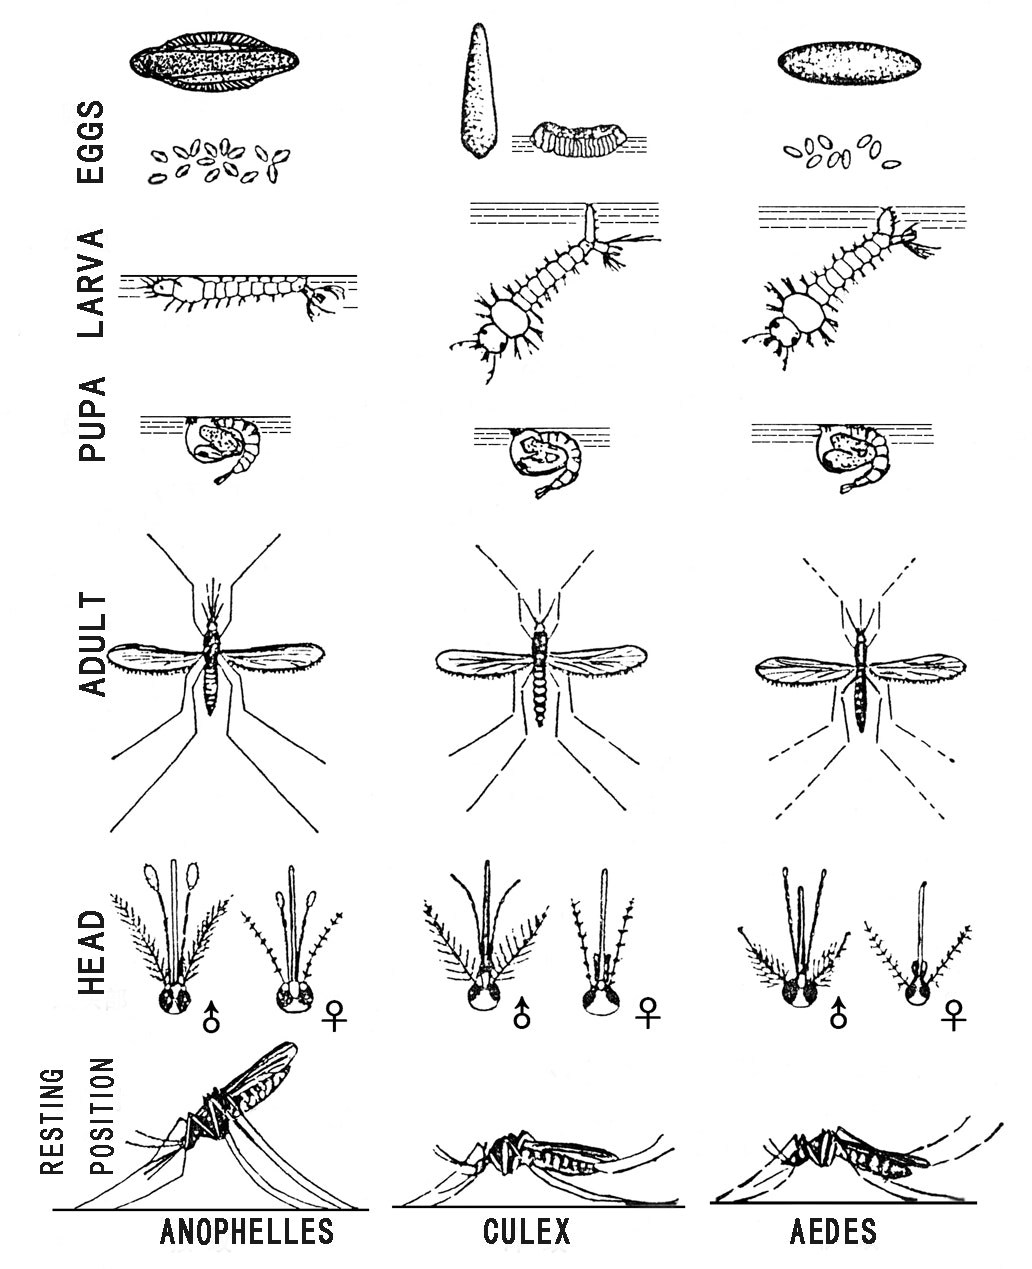 A pictorial guide for Aedes, Culex, and Anopheles mosquito life stages